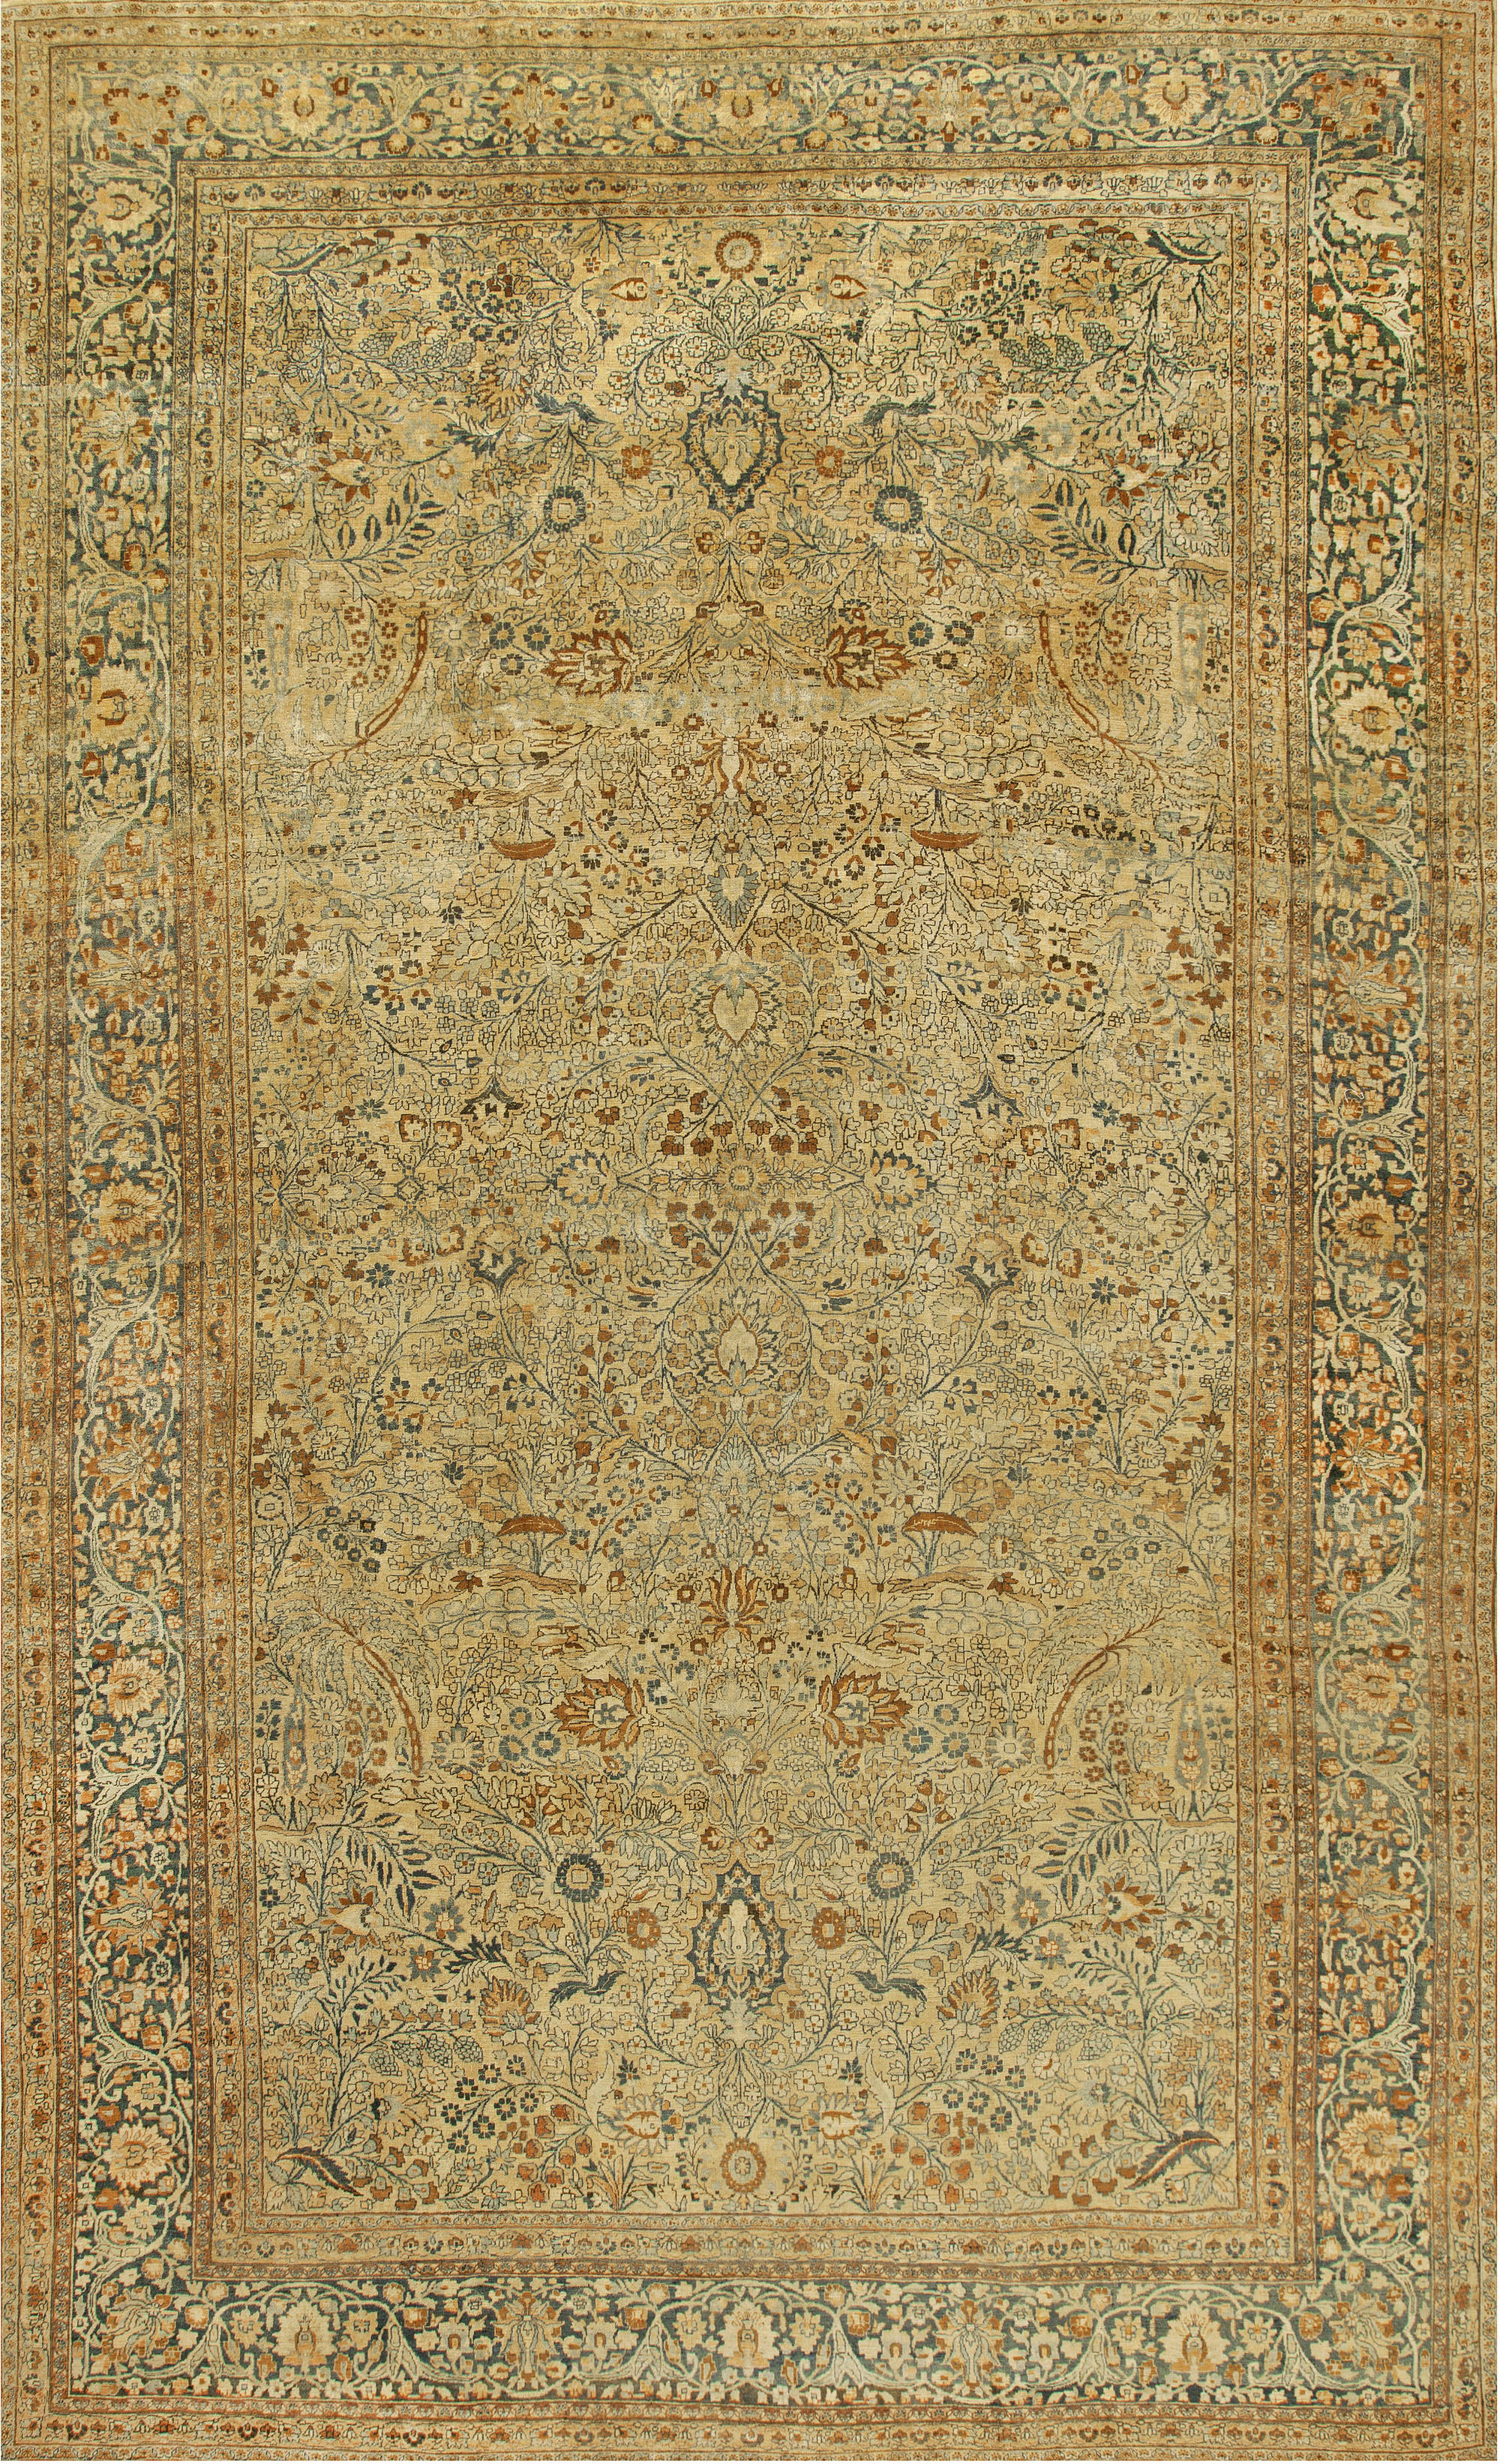 Antique Persian Khorassan Carpet BB6726